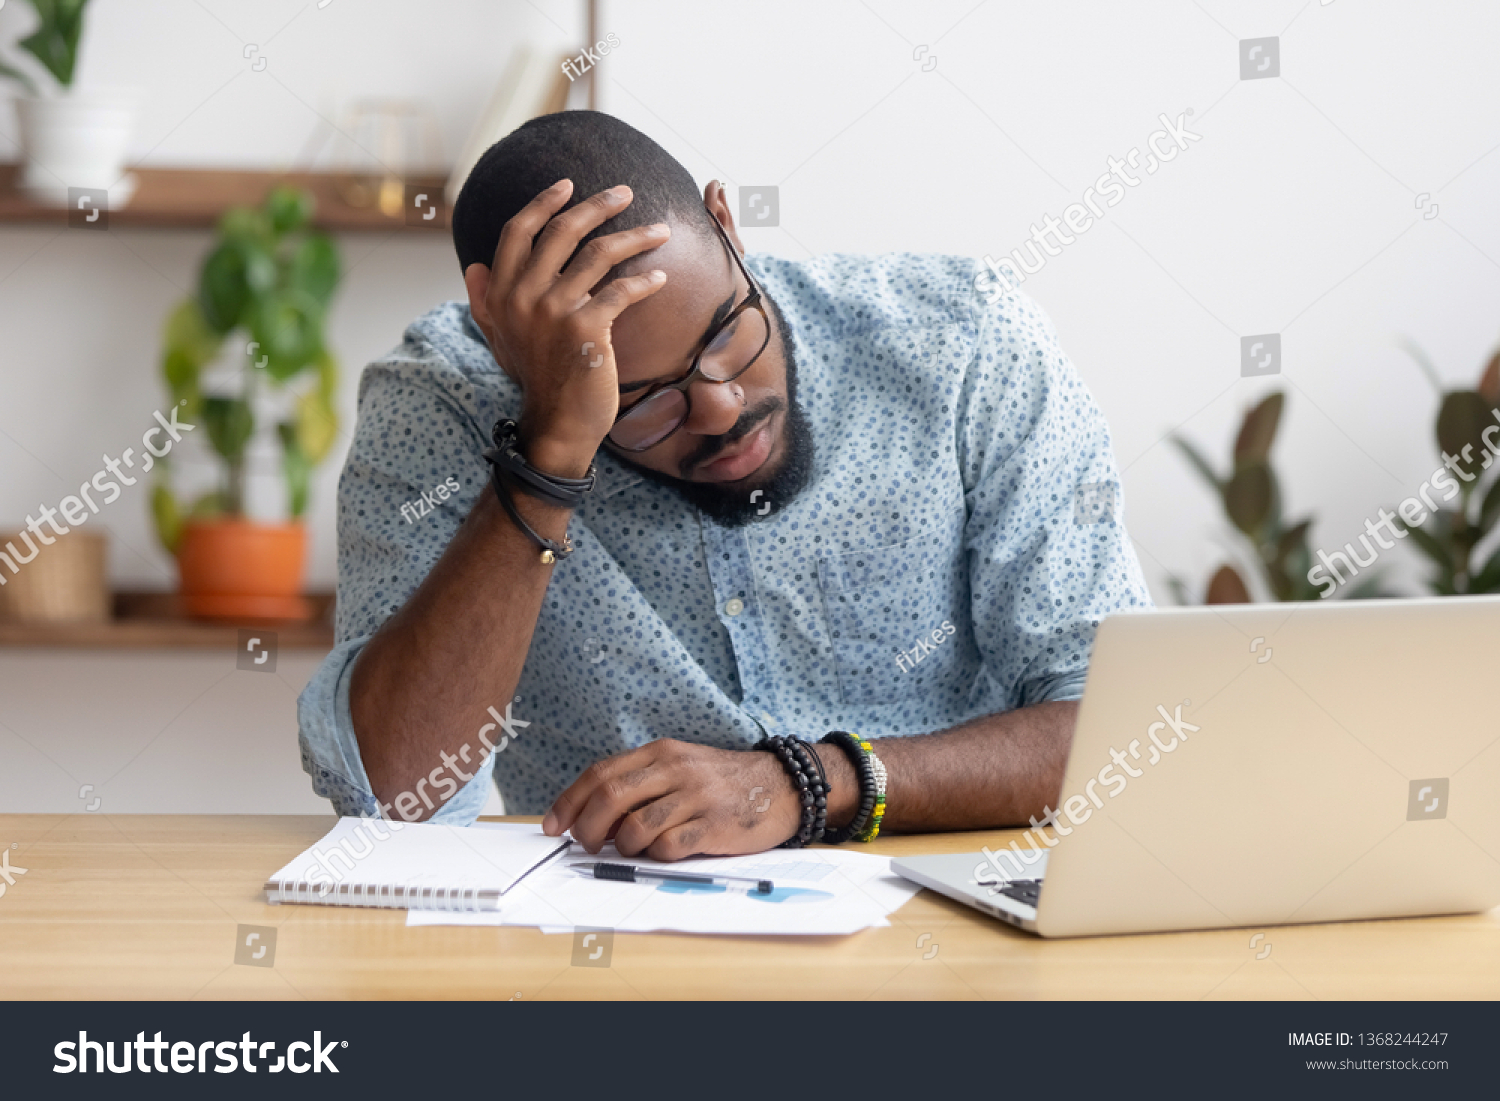 Tired depressed bored african businessman frustrated by business failure bankruptcy looking at laptop feel exhausted having headache, upset stressed black office worker worried about problem at work #1368244247